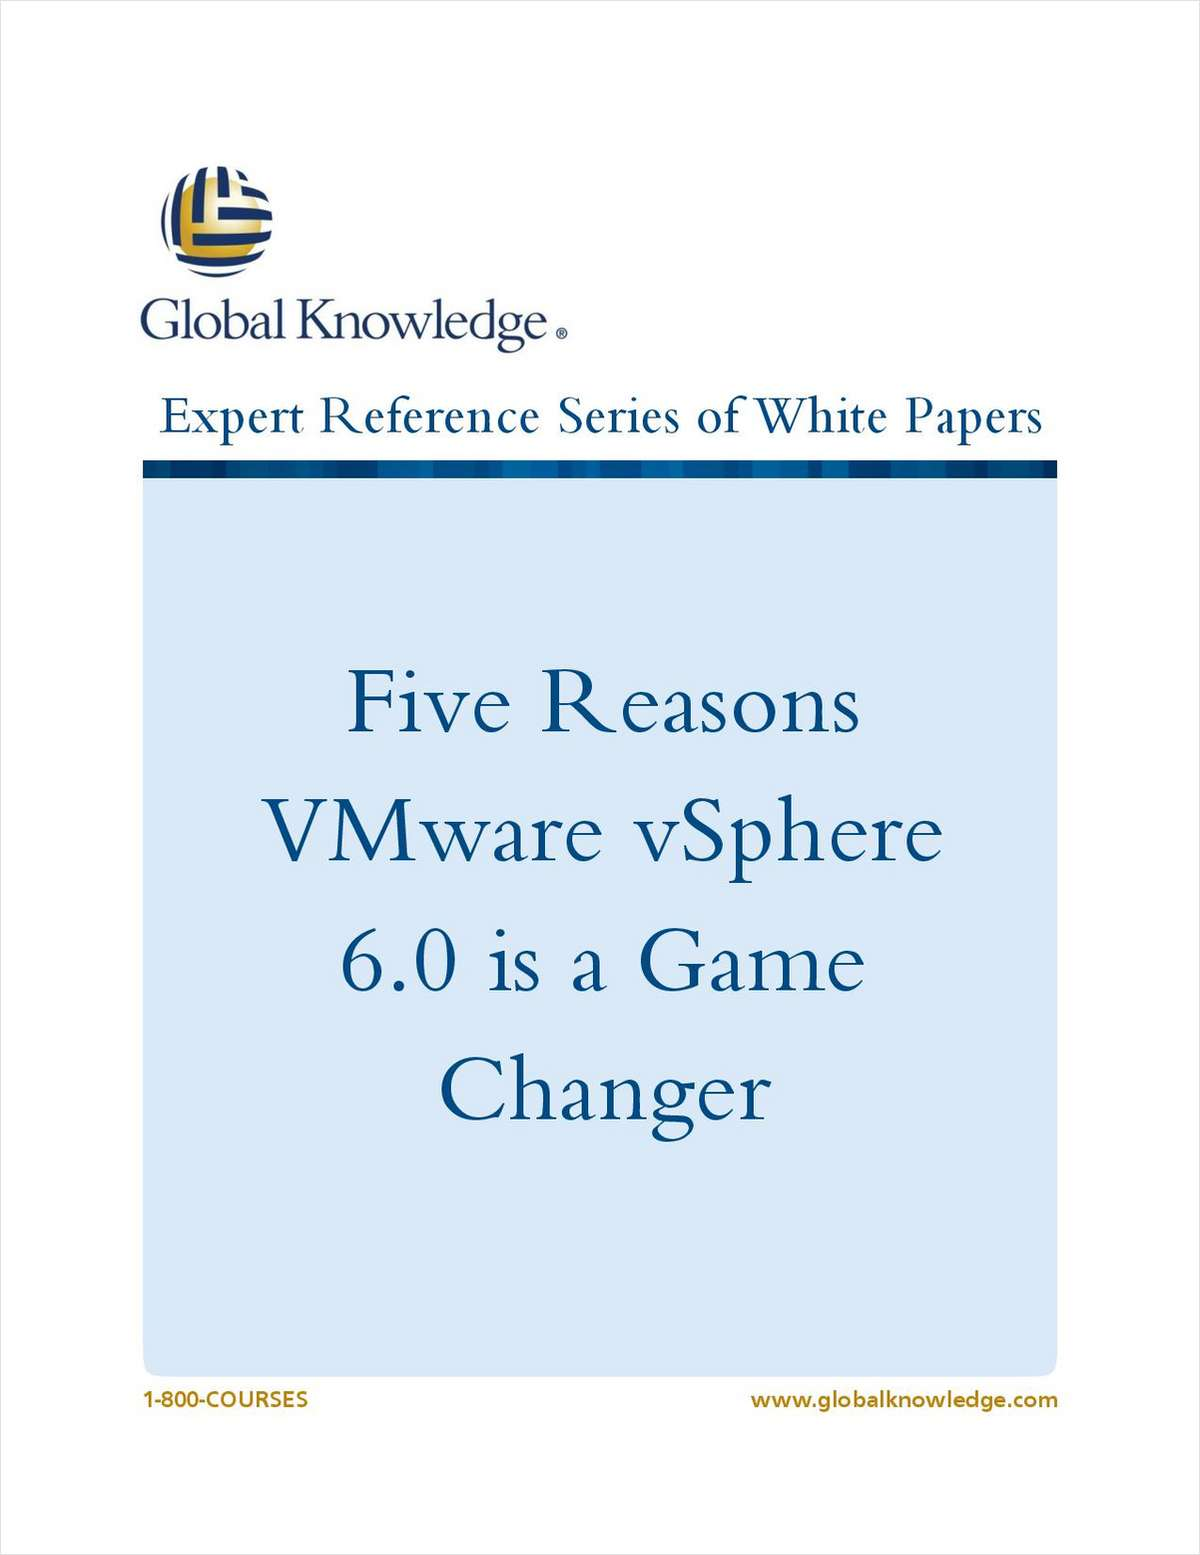 VMware vSphere 6.0 is a Game Changer